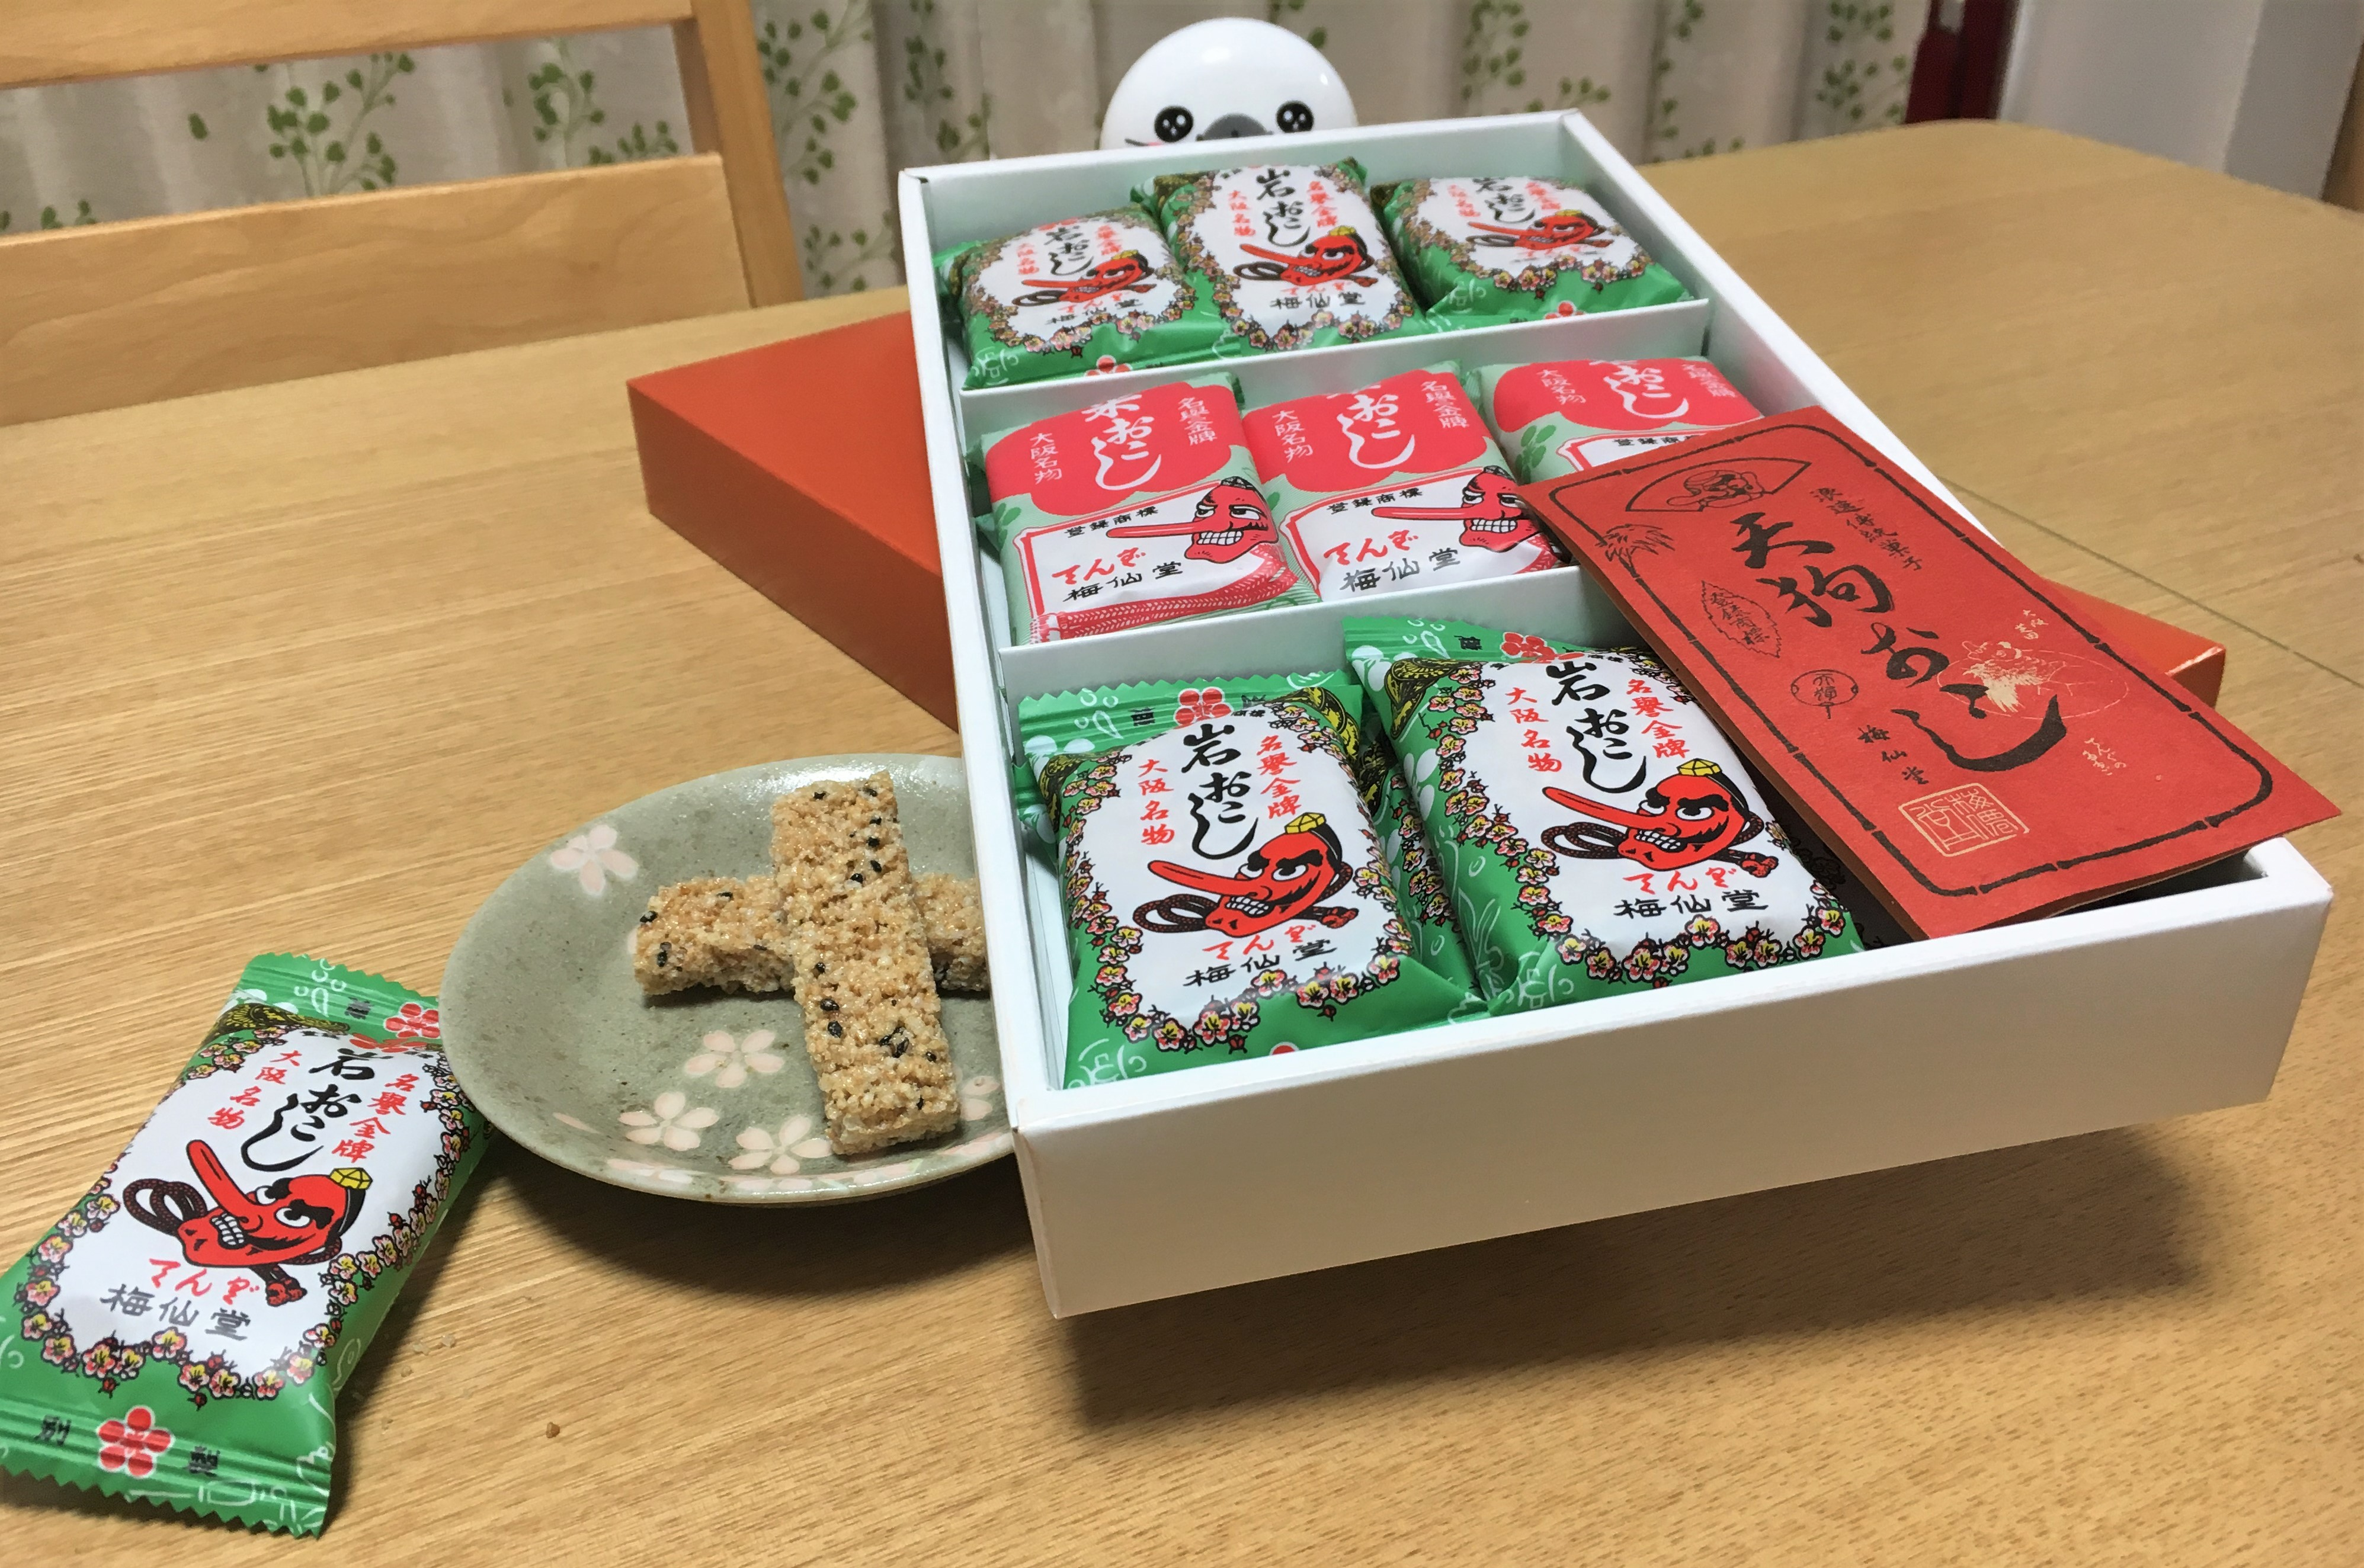 gift set of various kinds of okoshi from Baisendo in Osaka